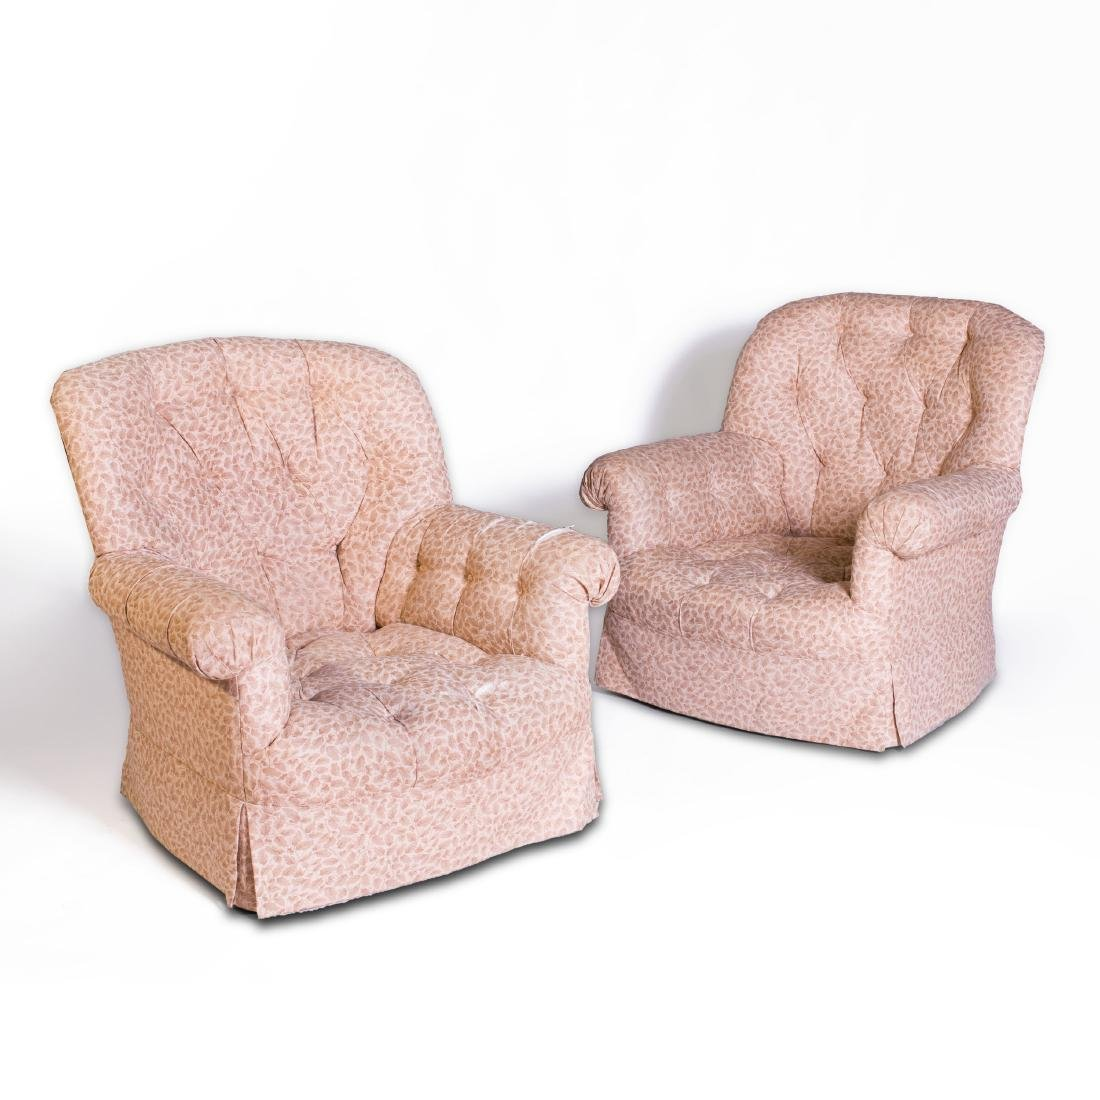 Pair of Tufted Linen Upholstered Club Chairs